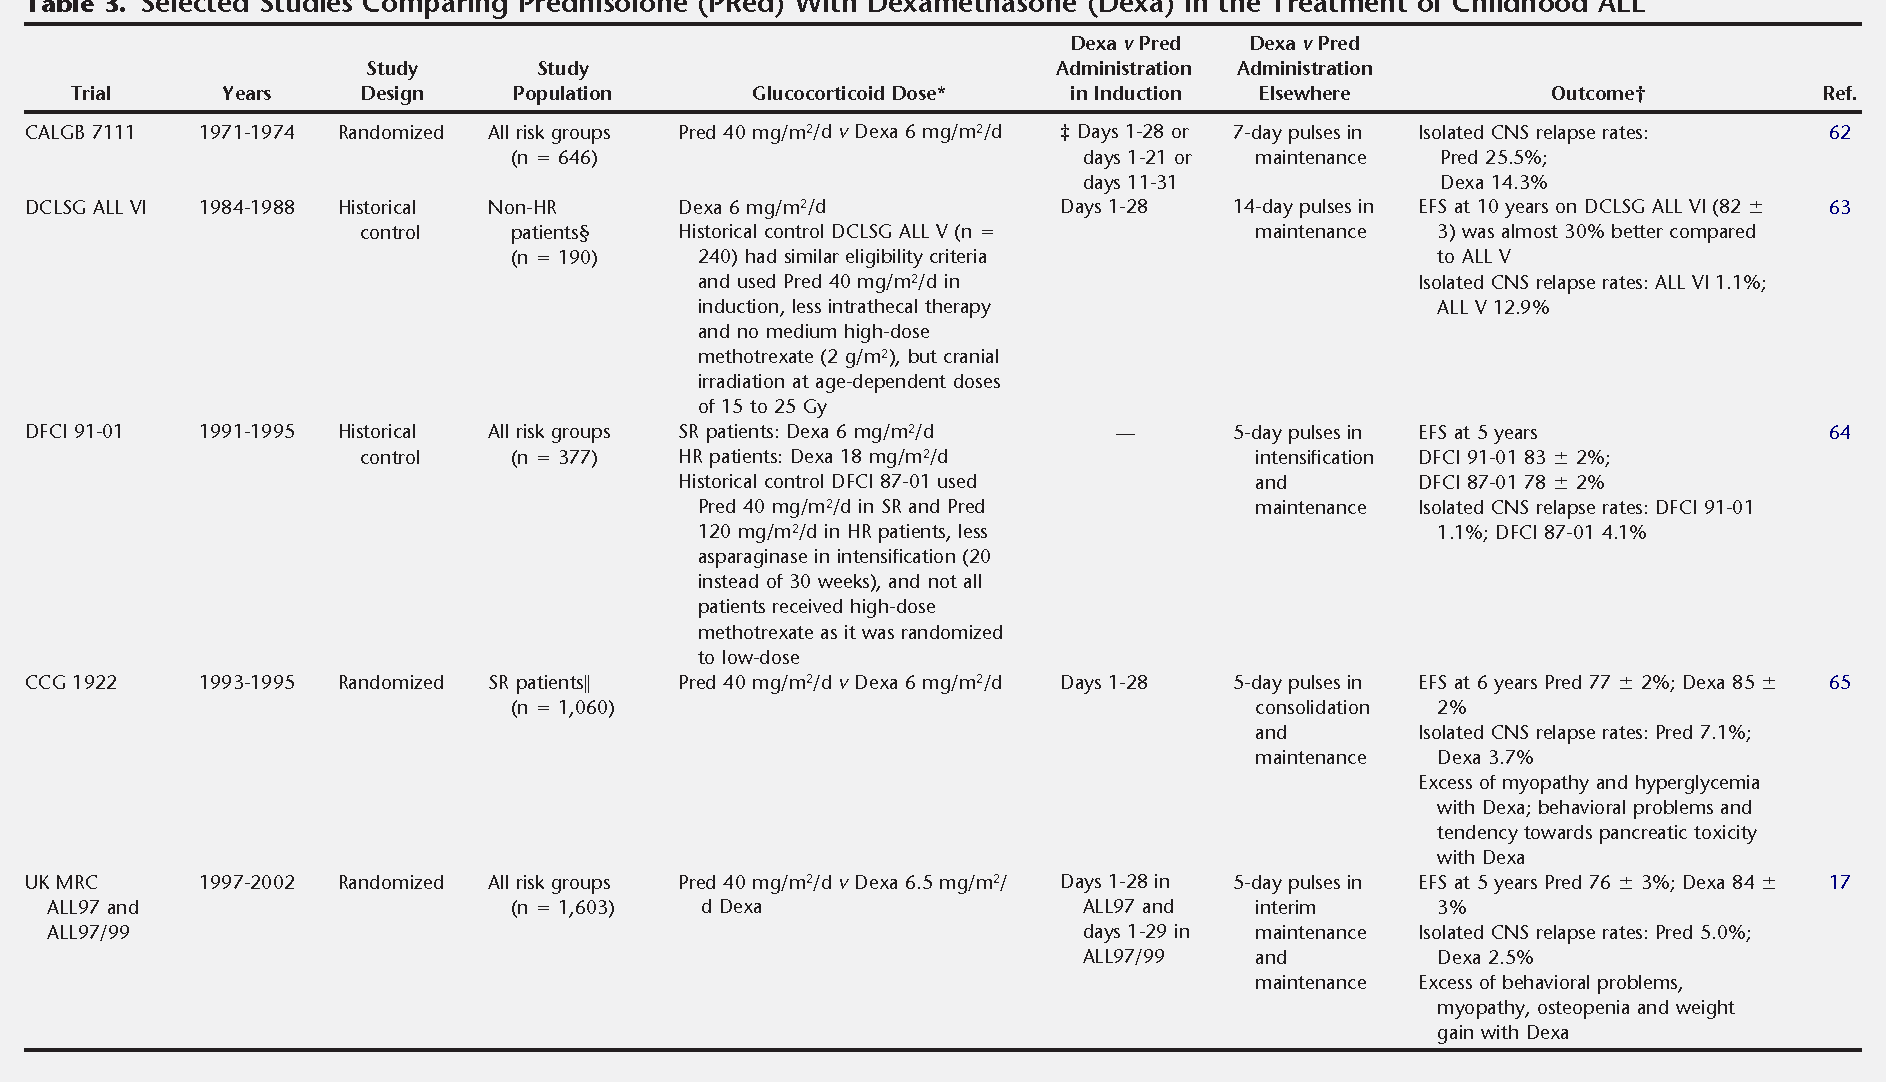 Table 3. Selected Studies Comparing Prednisolone (PRed) With Dexamethasone (Dexa) in the Treatment of Childhood ALL